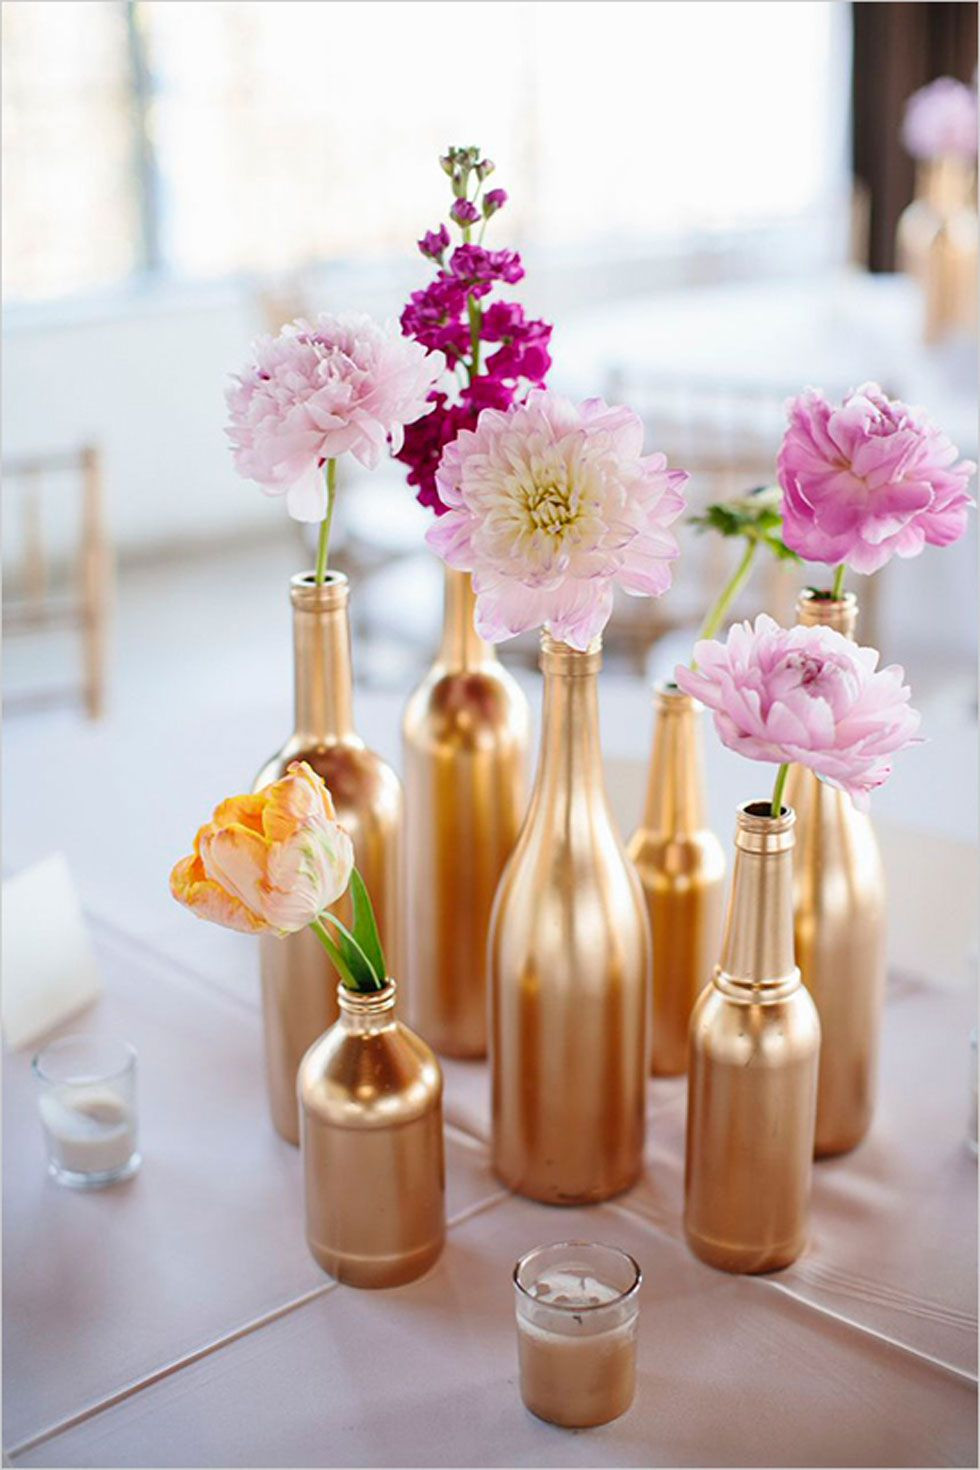 ideas for glass vases for centerpieces of 55 creative bridal shower ideas that are as special as the bride to with these spray painted glass bottles look gorgeous as simple vases for individ